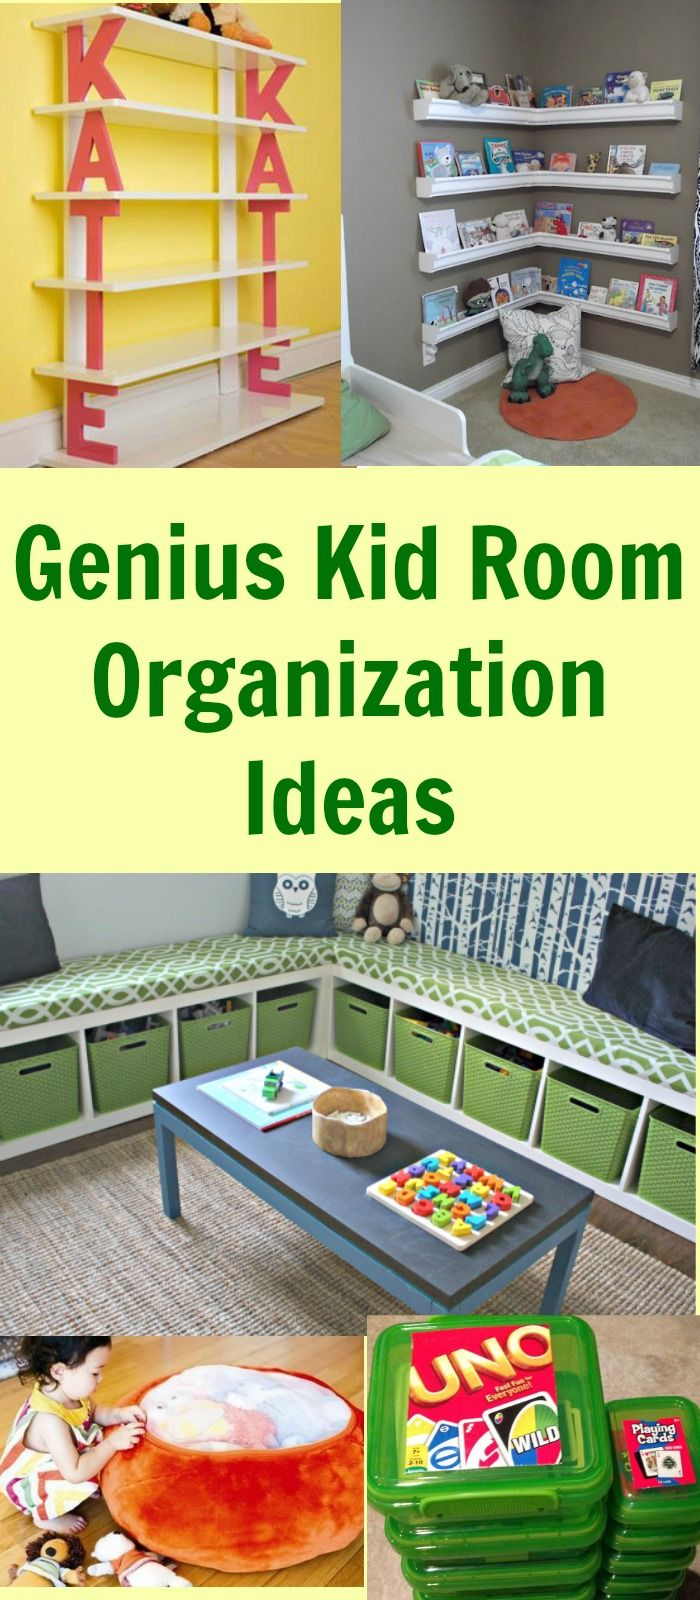 Genius Kid Room Organization Ideas